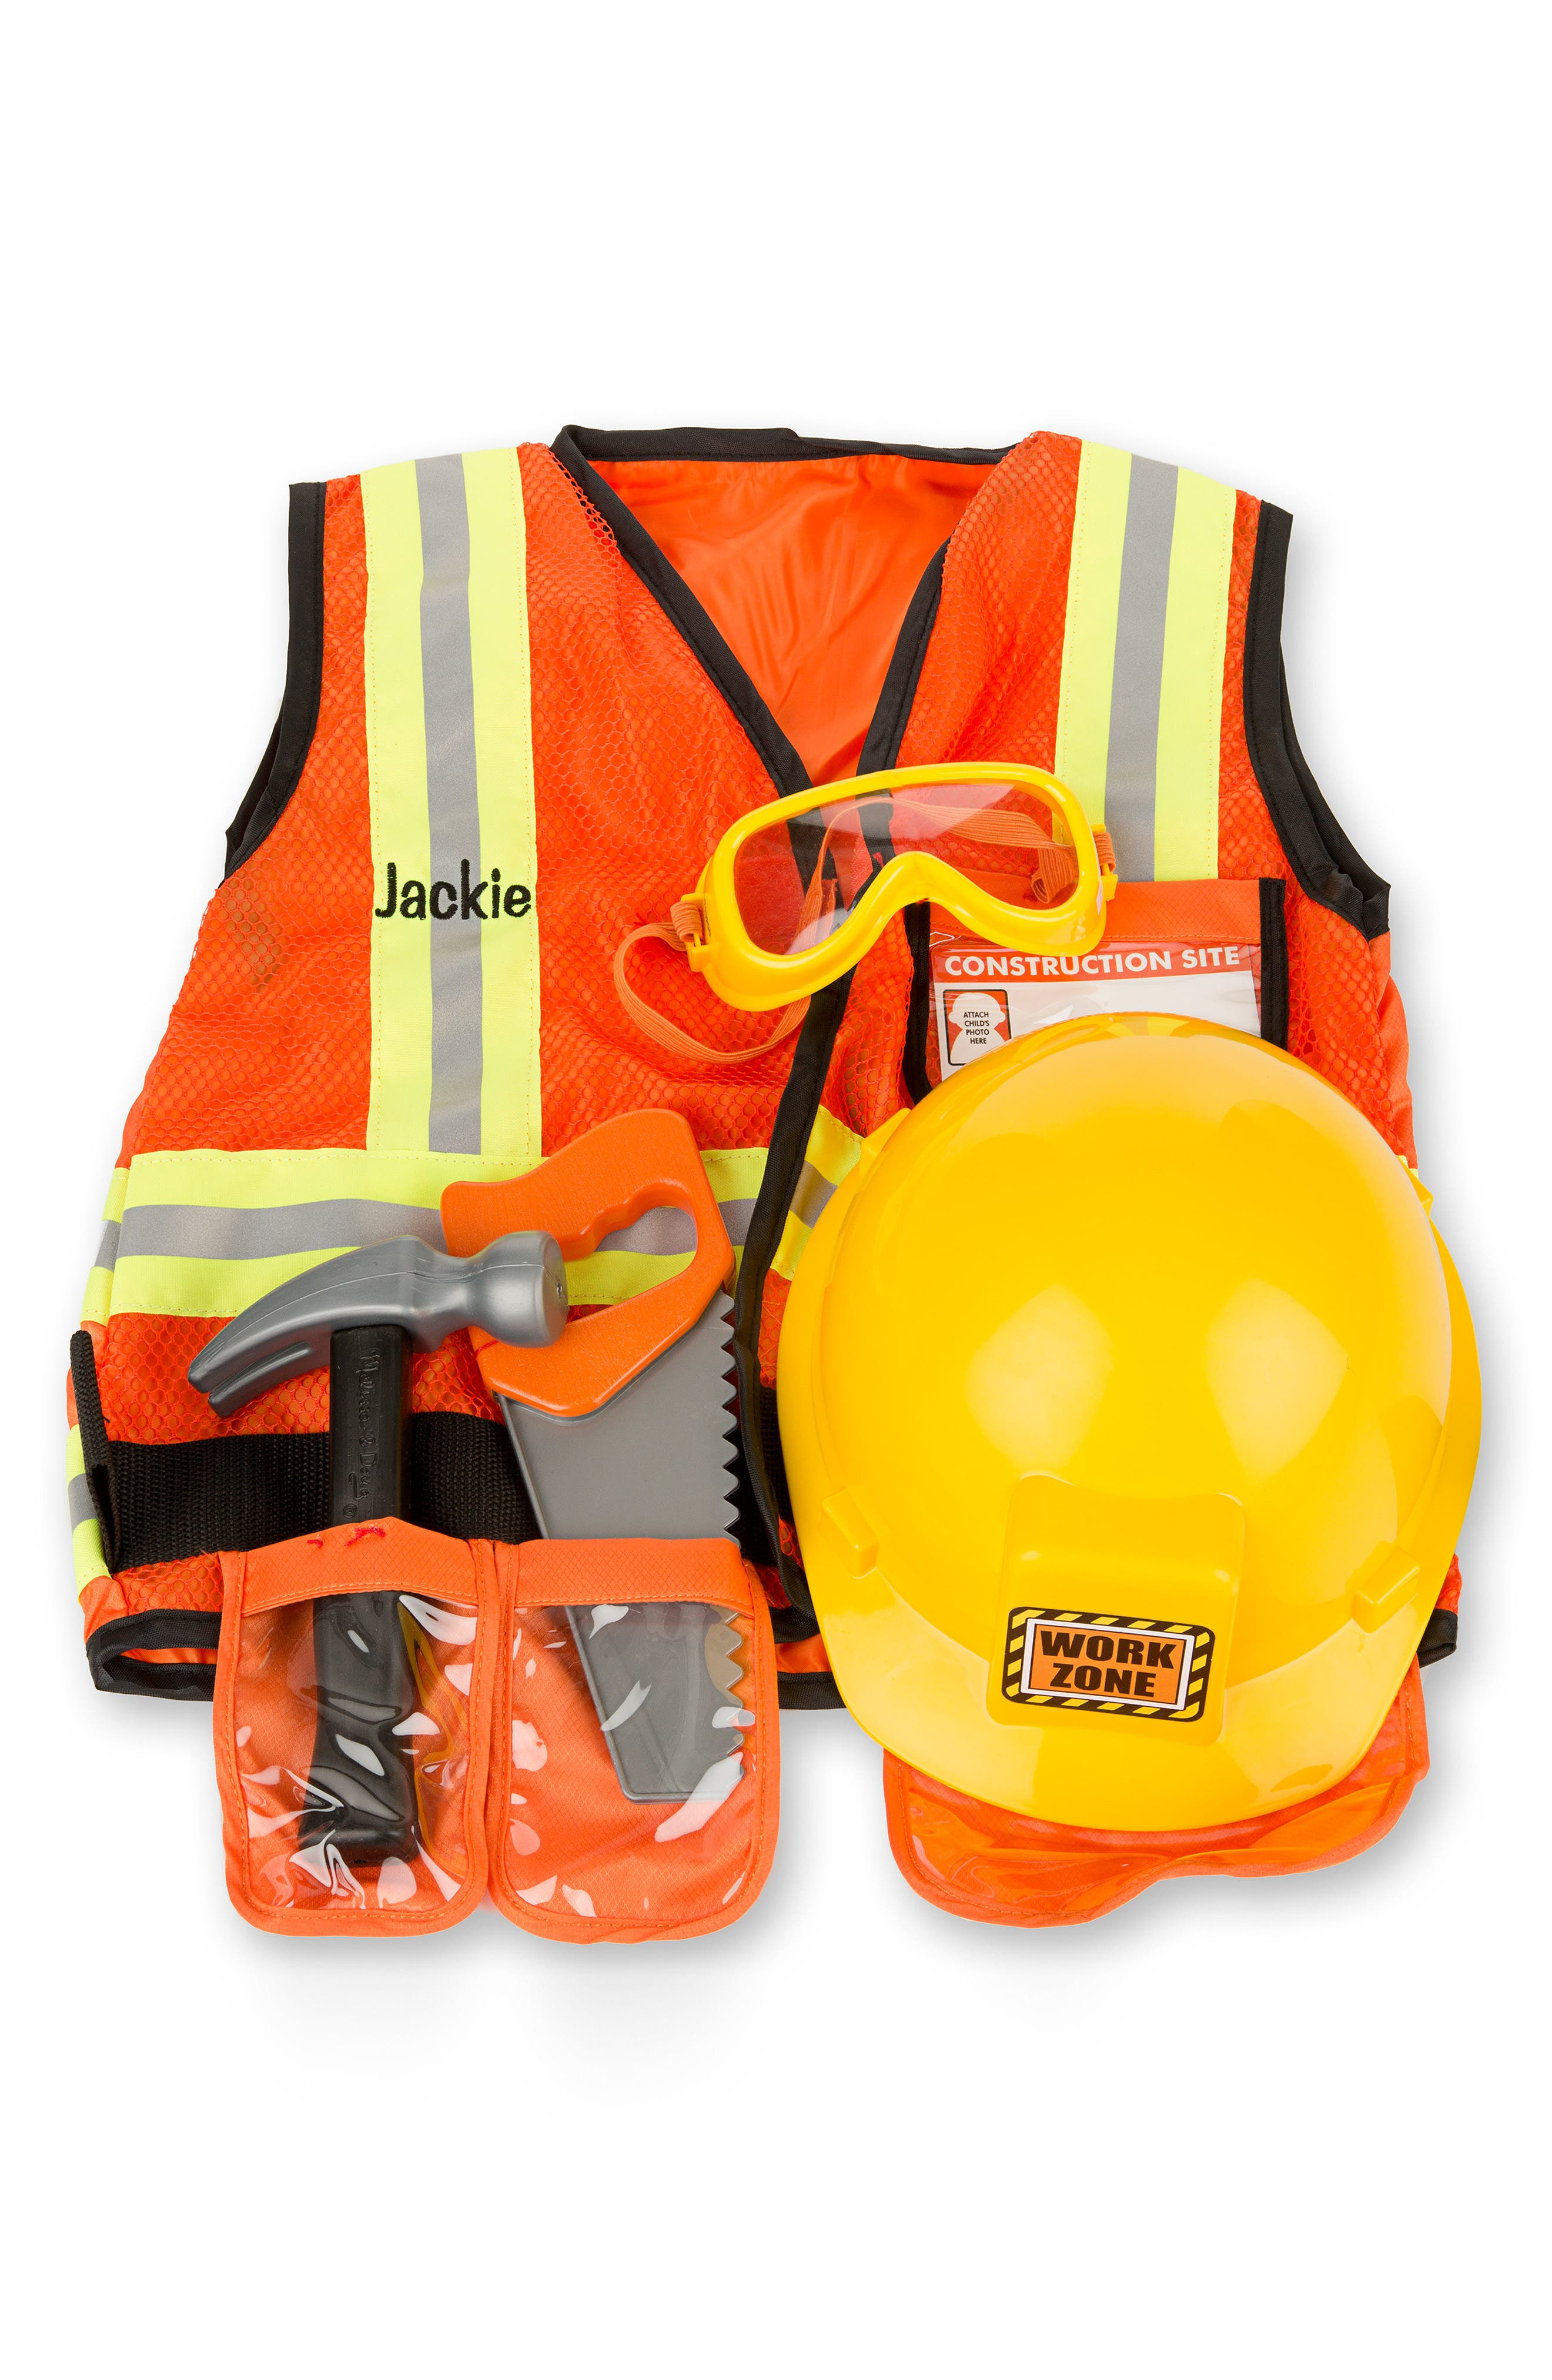 'Construction Worker' Personalized Costume Set,                             Alternate thumbnail 4, color,                             800